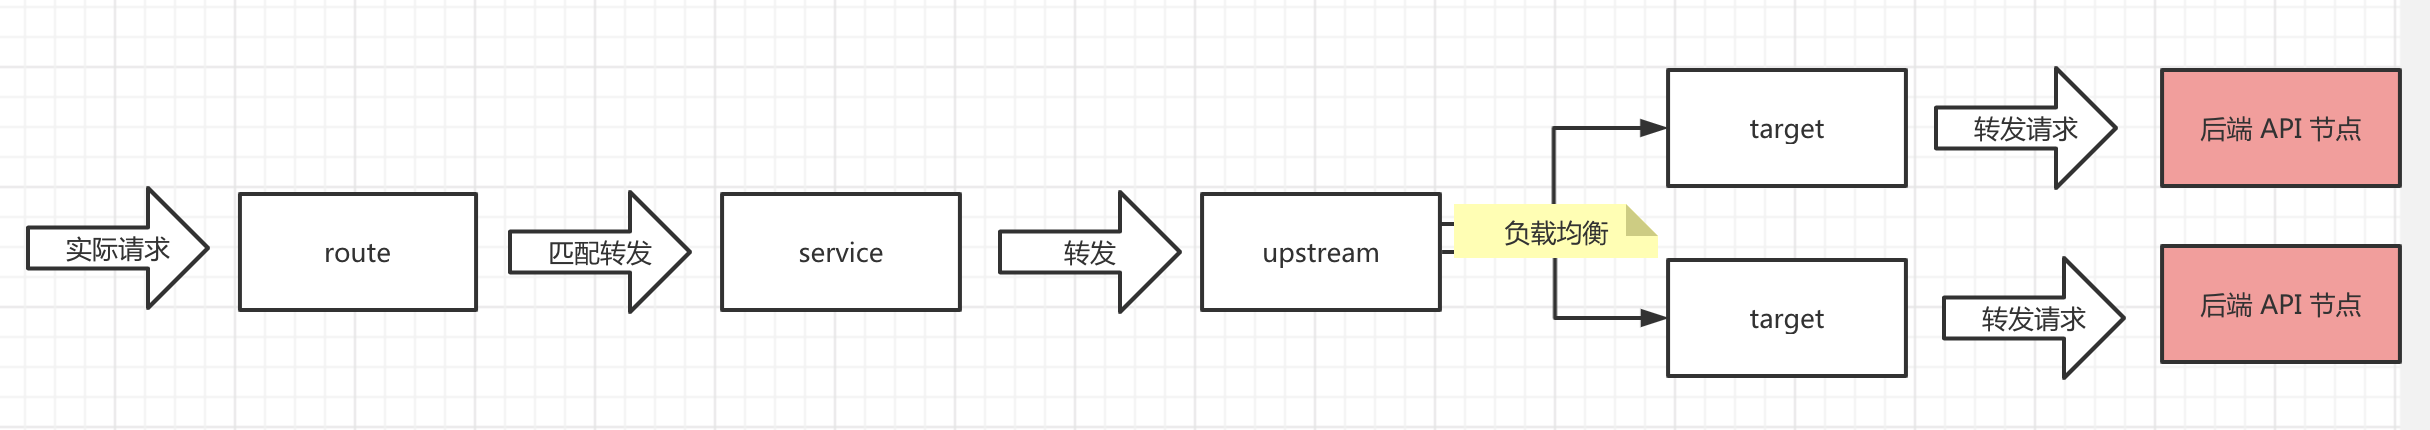 service + route + upstream + target